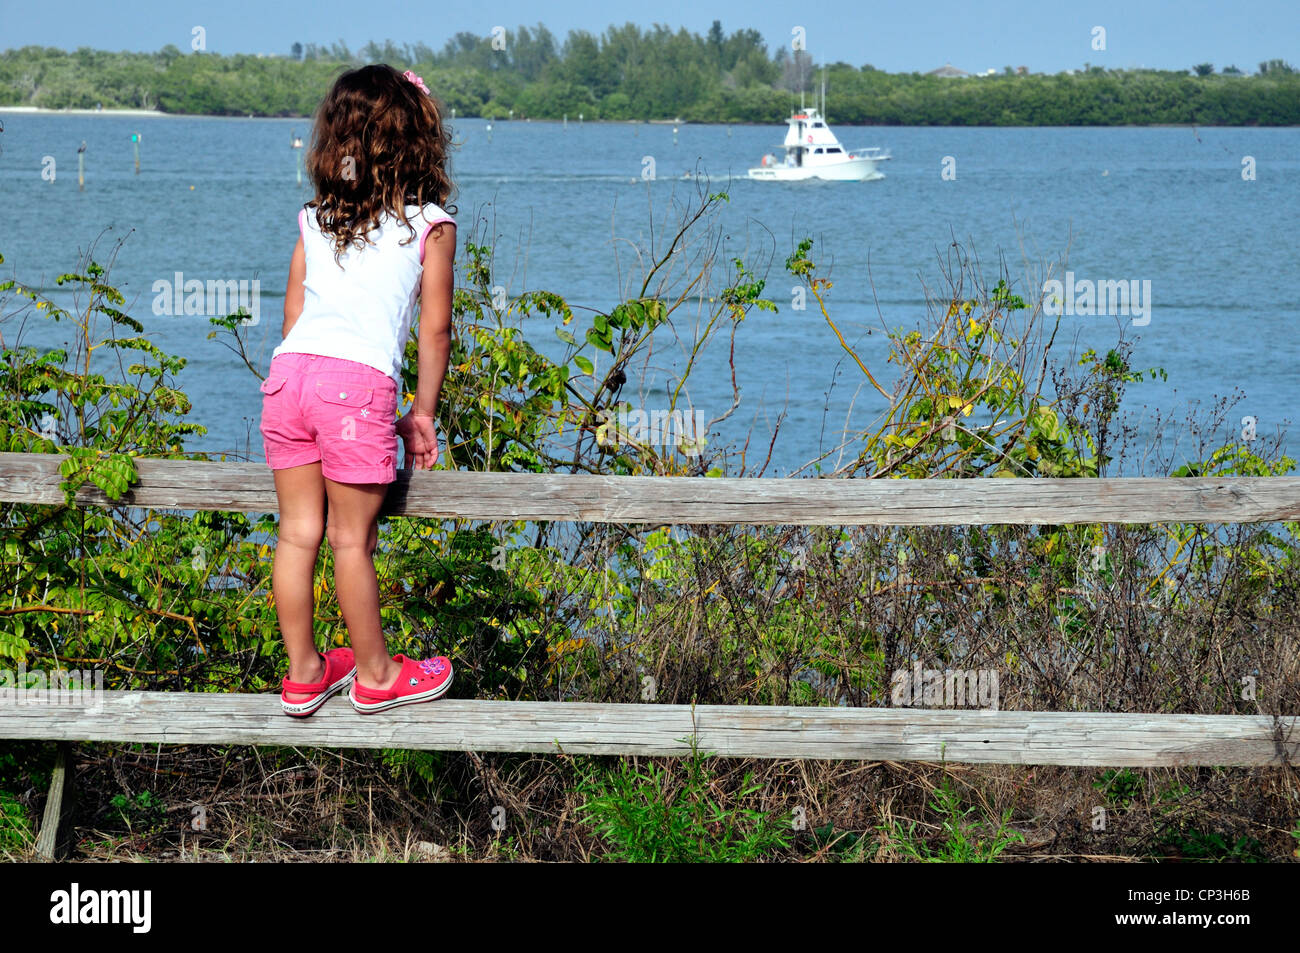 Young girl stands on a fence rail to get a better view of boats passing Bowditch Park, Ft. Myers Beach, Florida - Stock Image